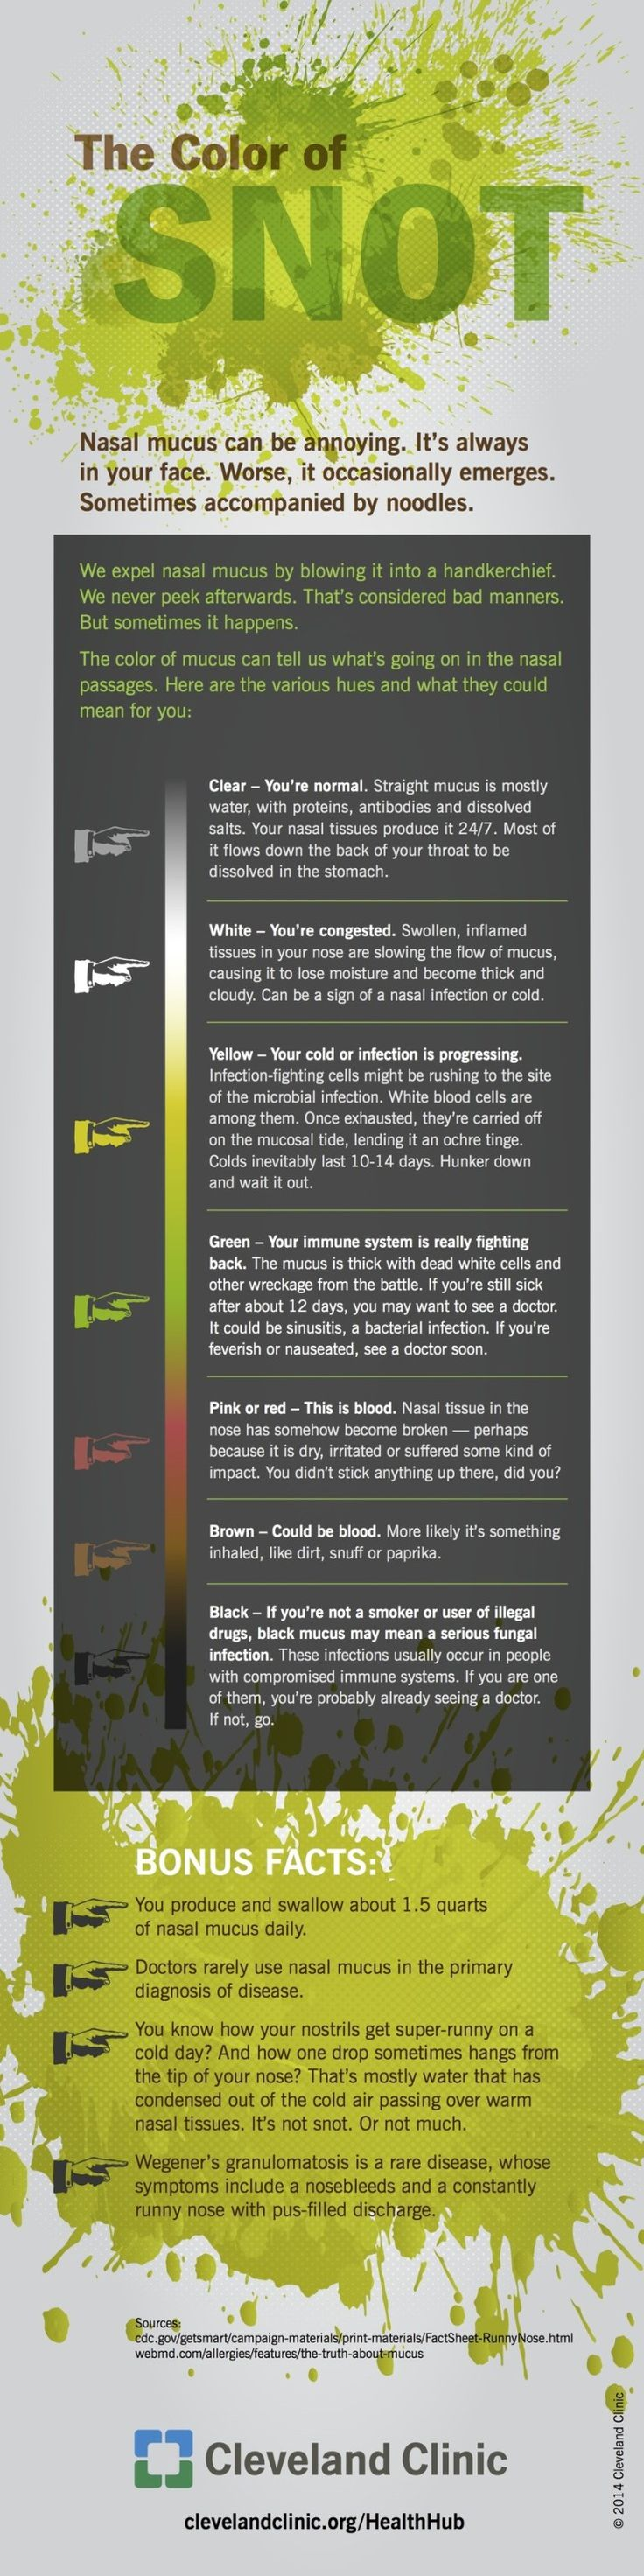 What The Color Of Your Snot Really Means (Infographic) - mindbodygreen.com